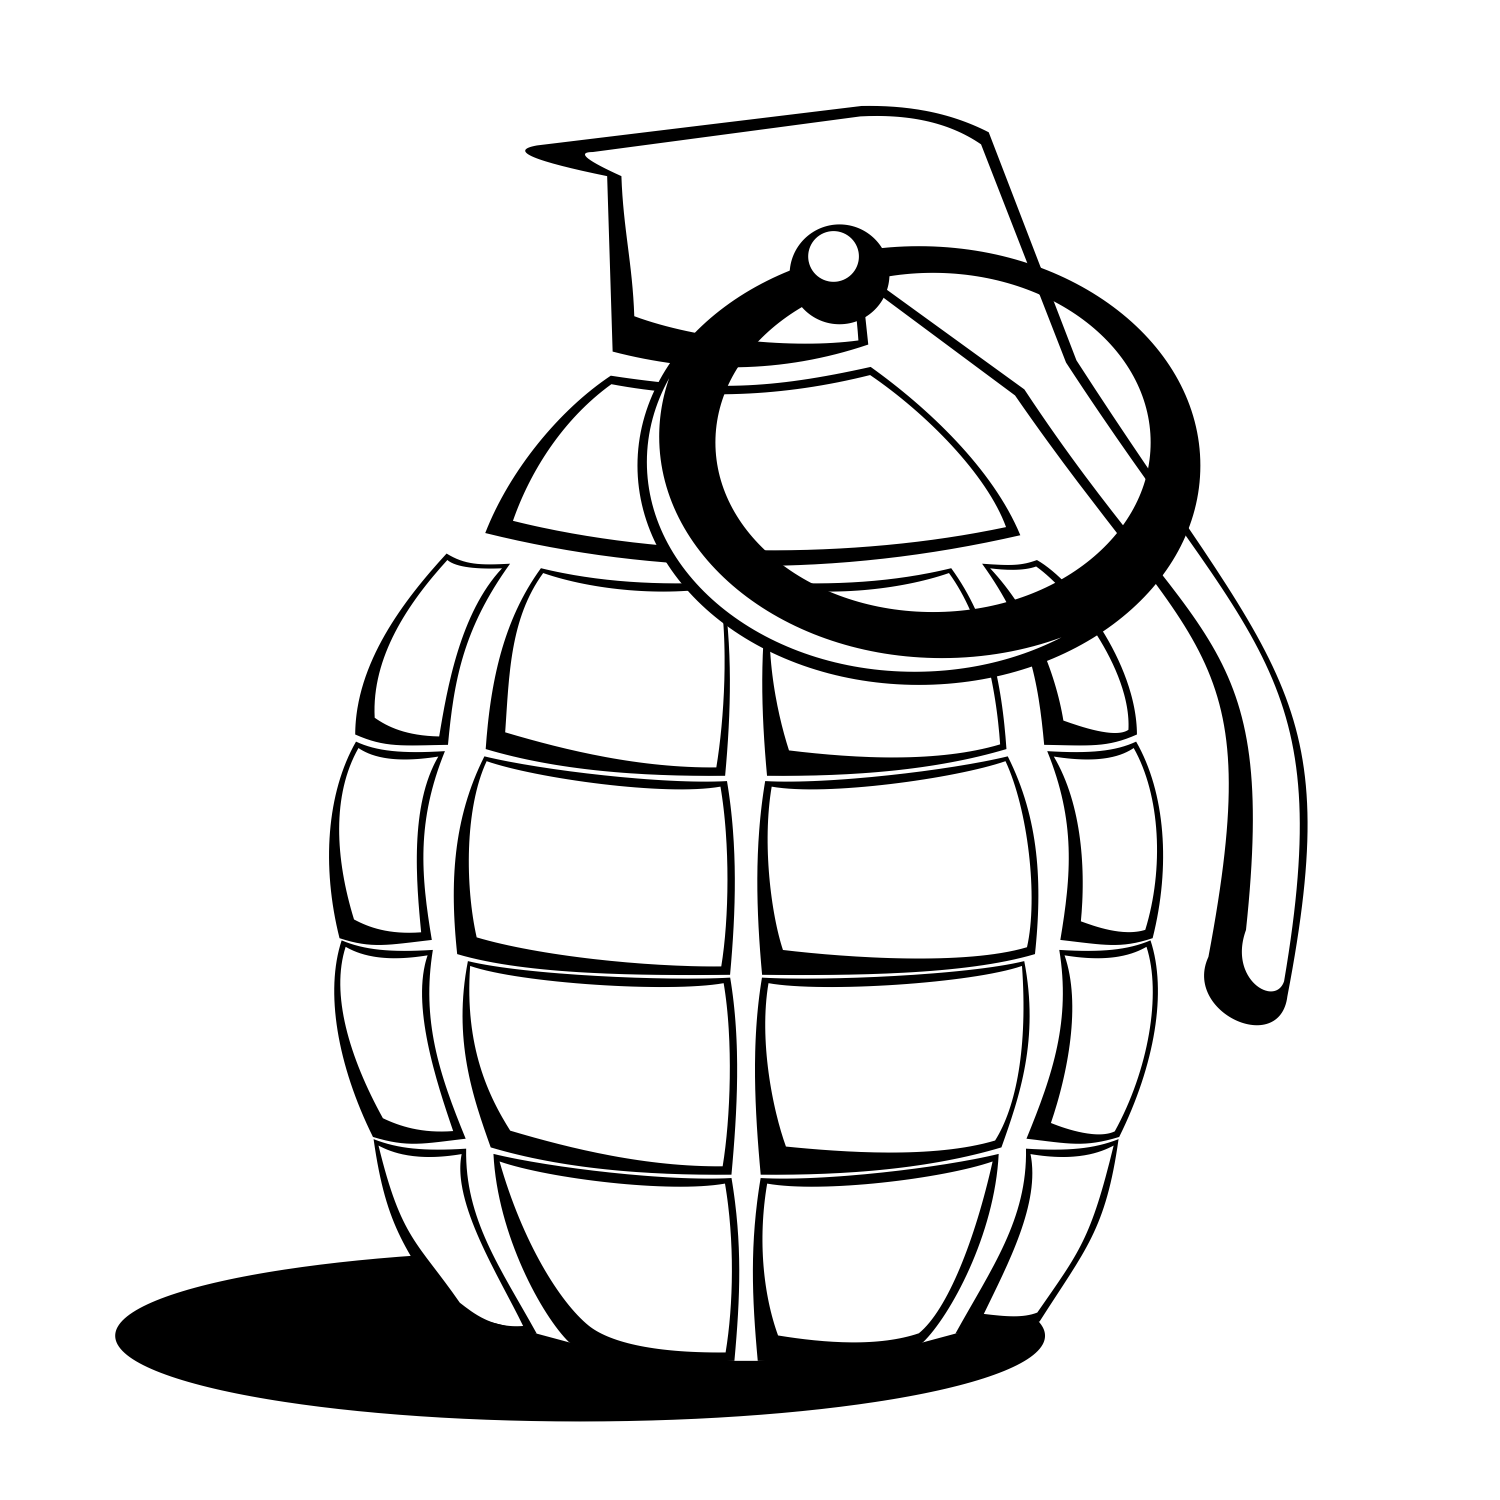 1500x1500 Drawn Grenade Pineapple